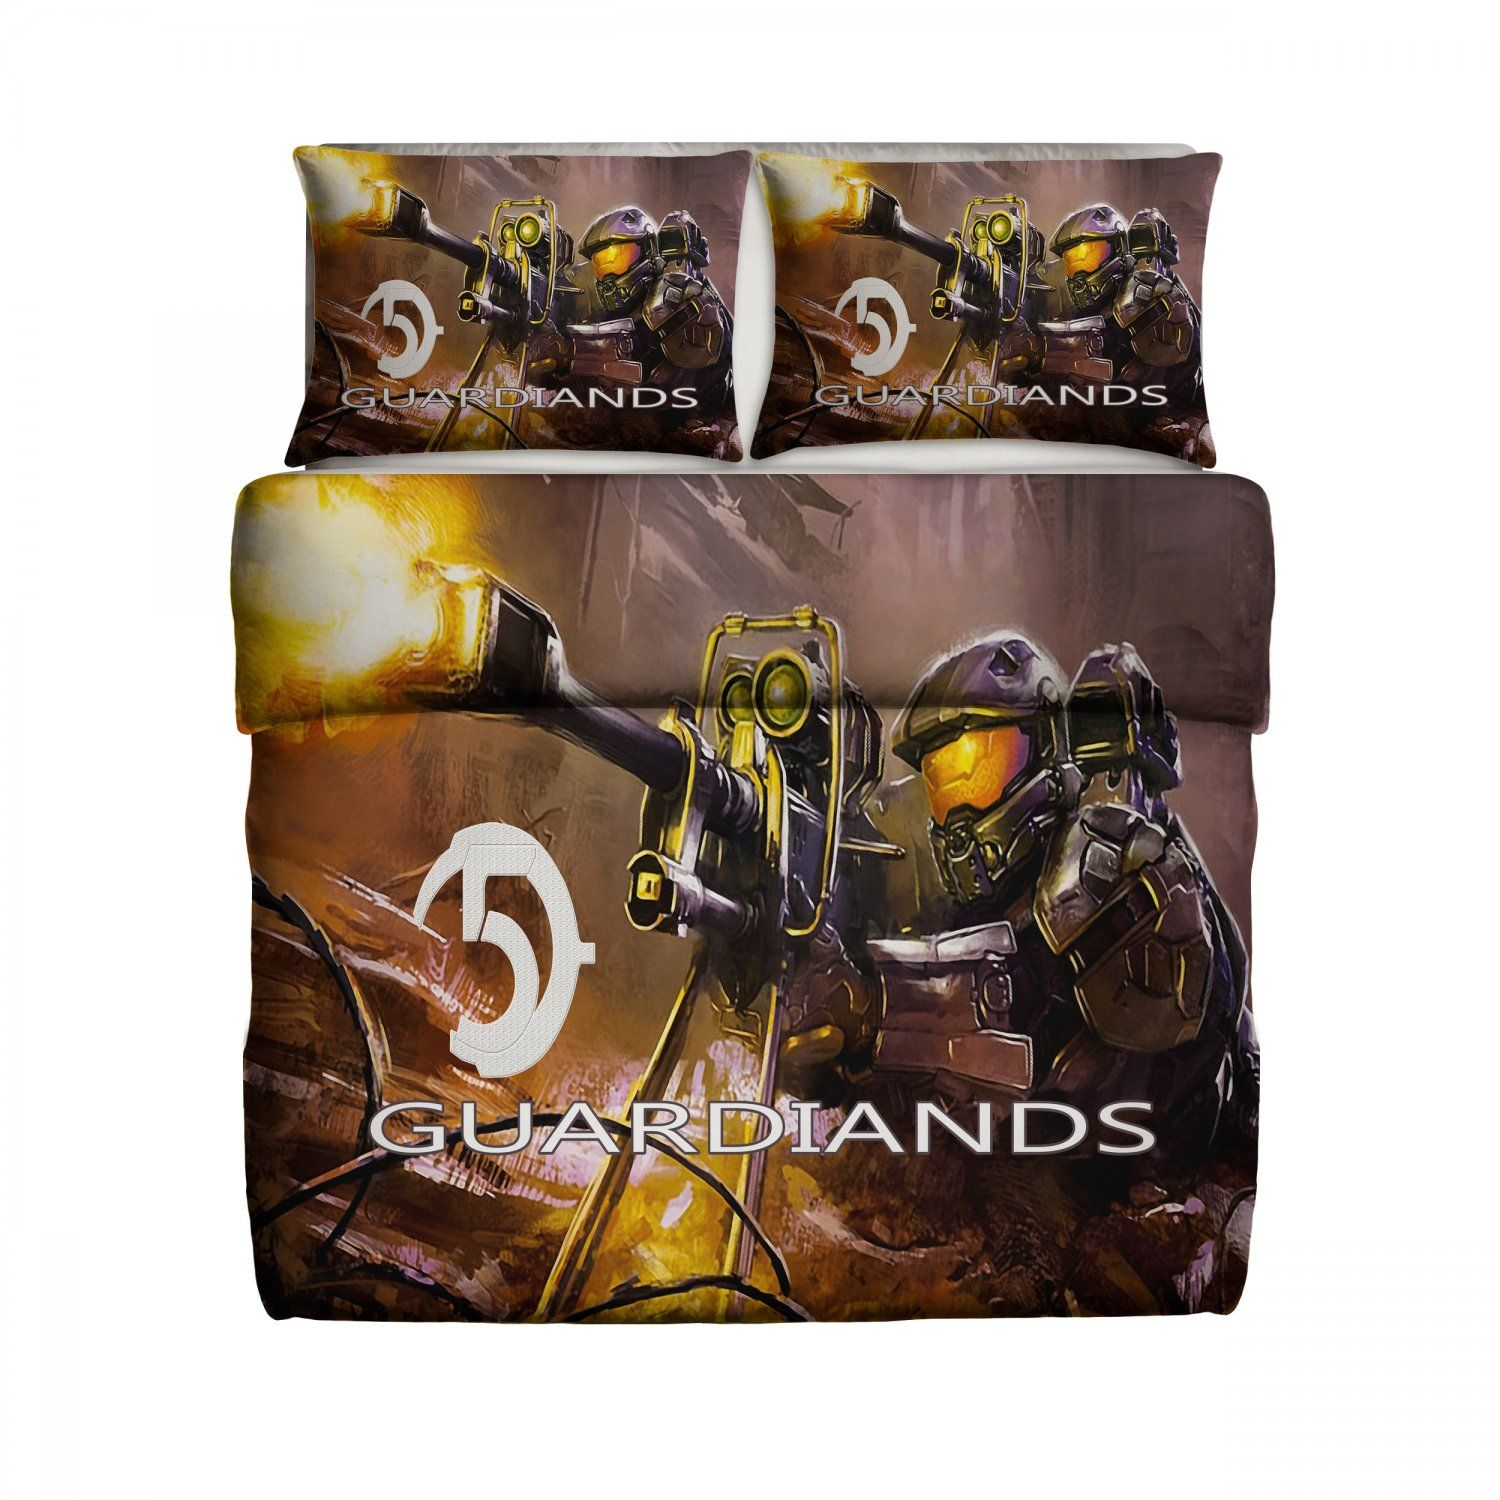 Halo fleece blanket large with pillow cases